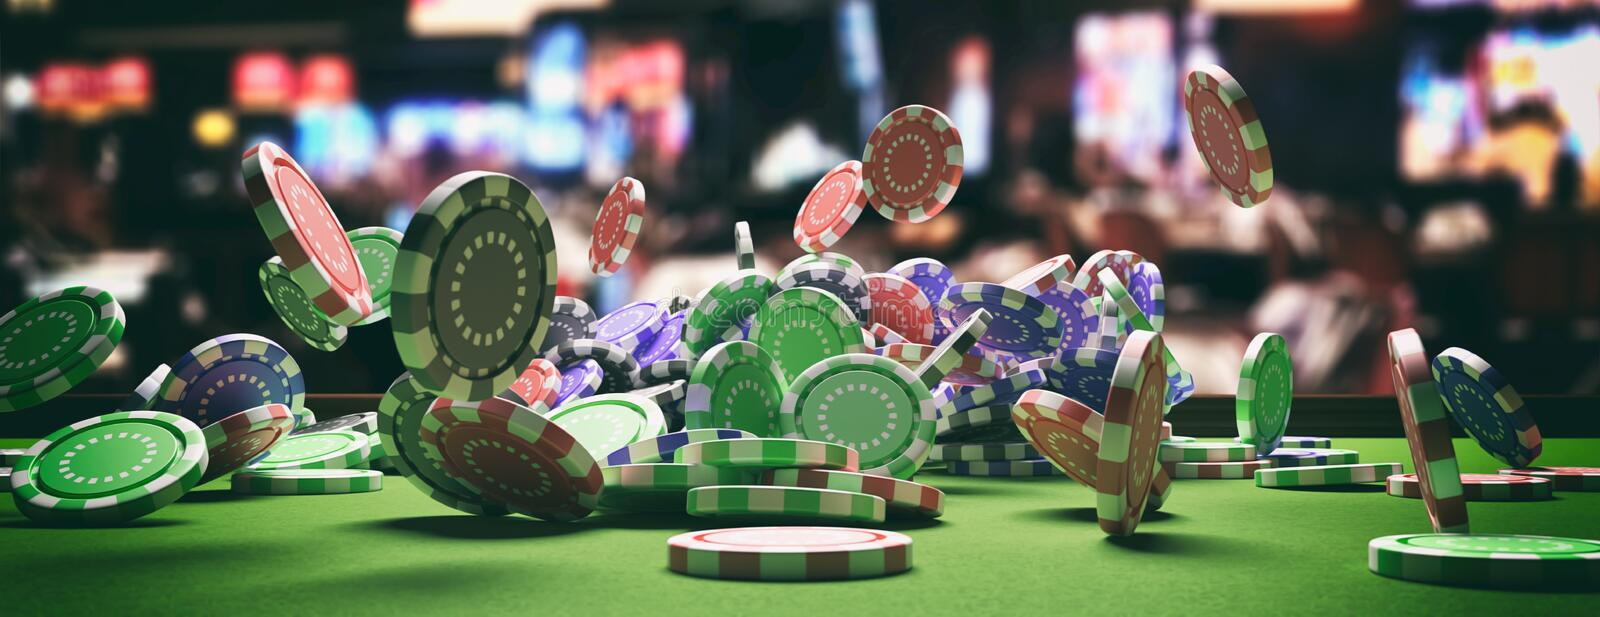 Poker chips falling on green felt roulette table, blur casino interior background. 3d illustration royalty free illustration